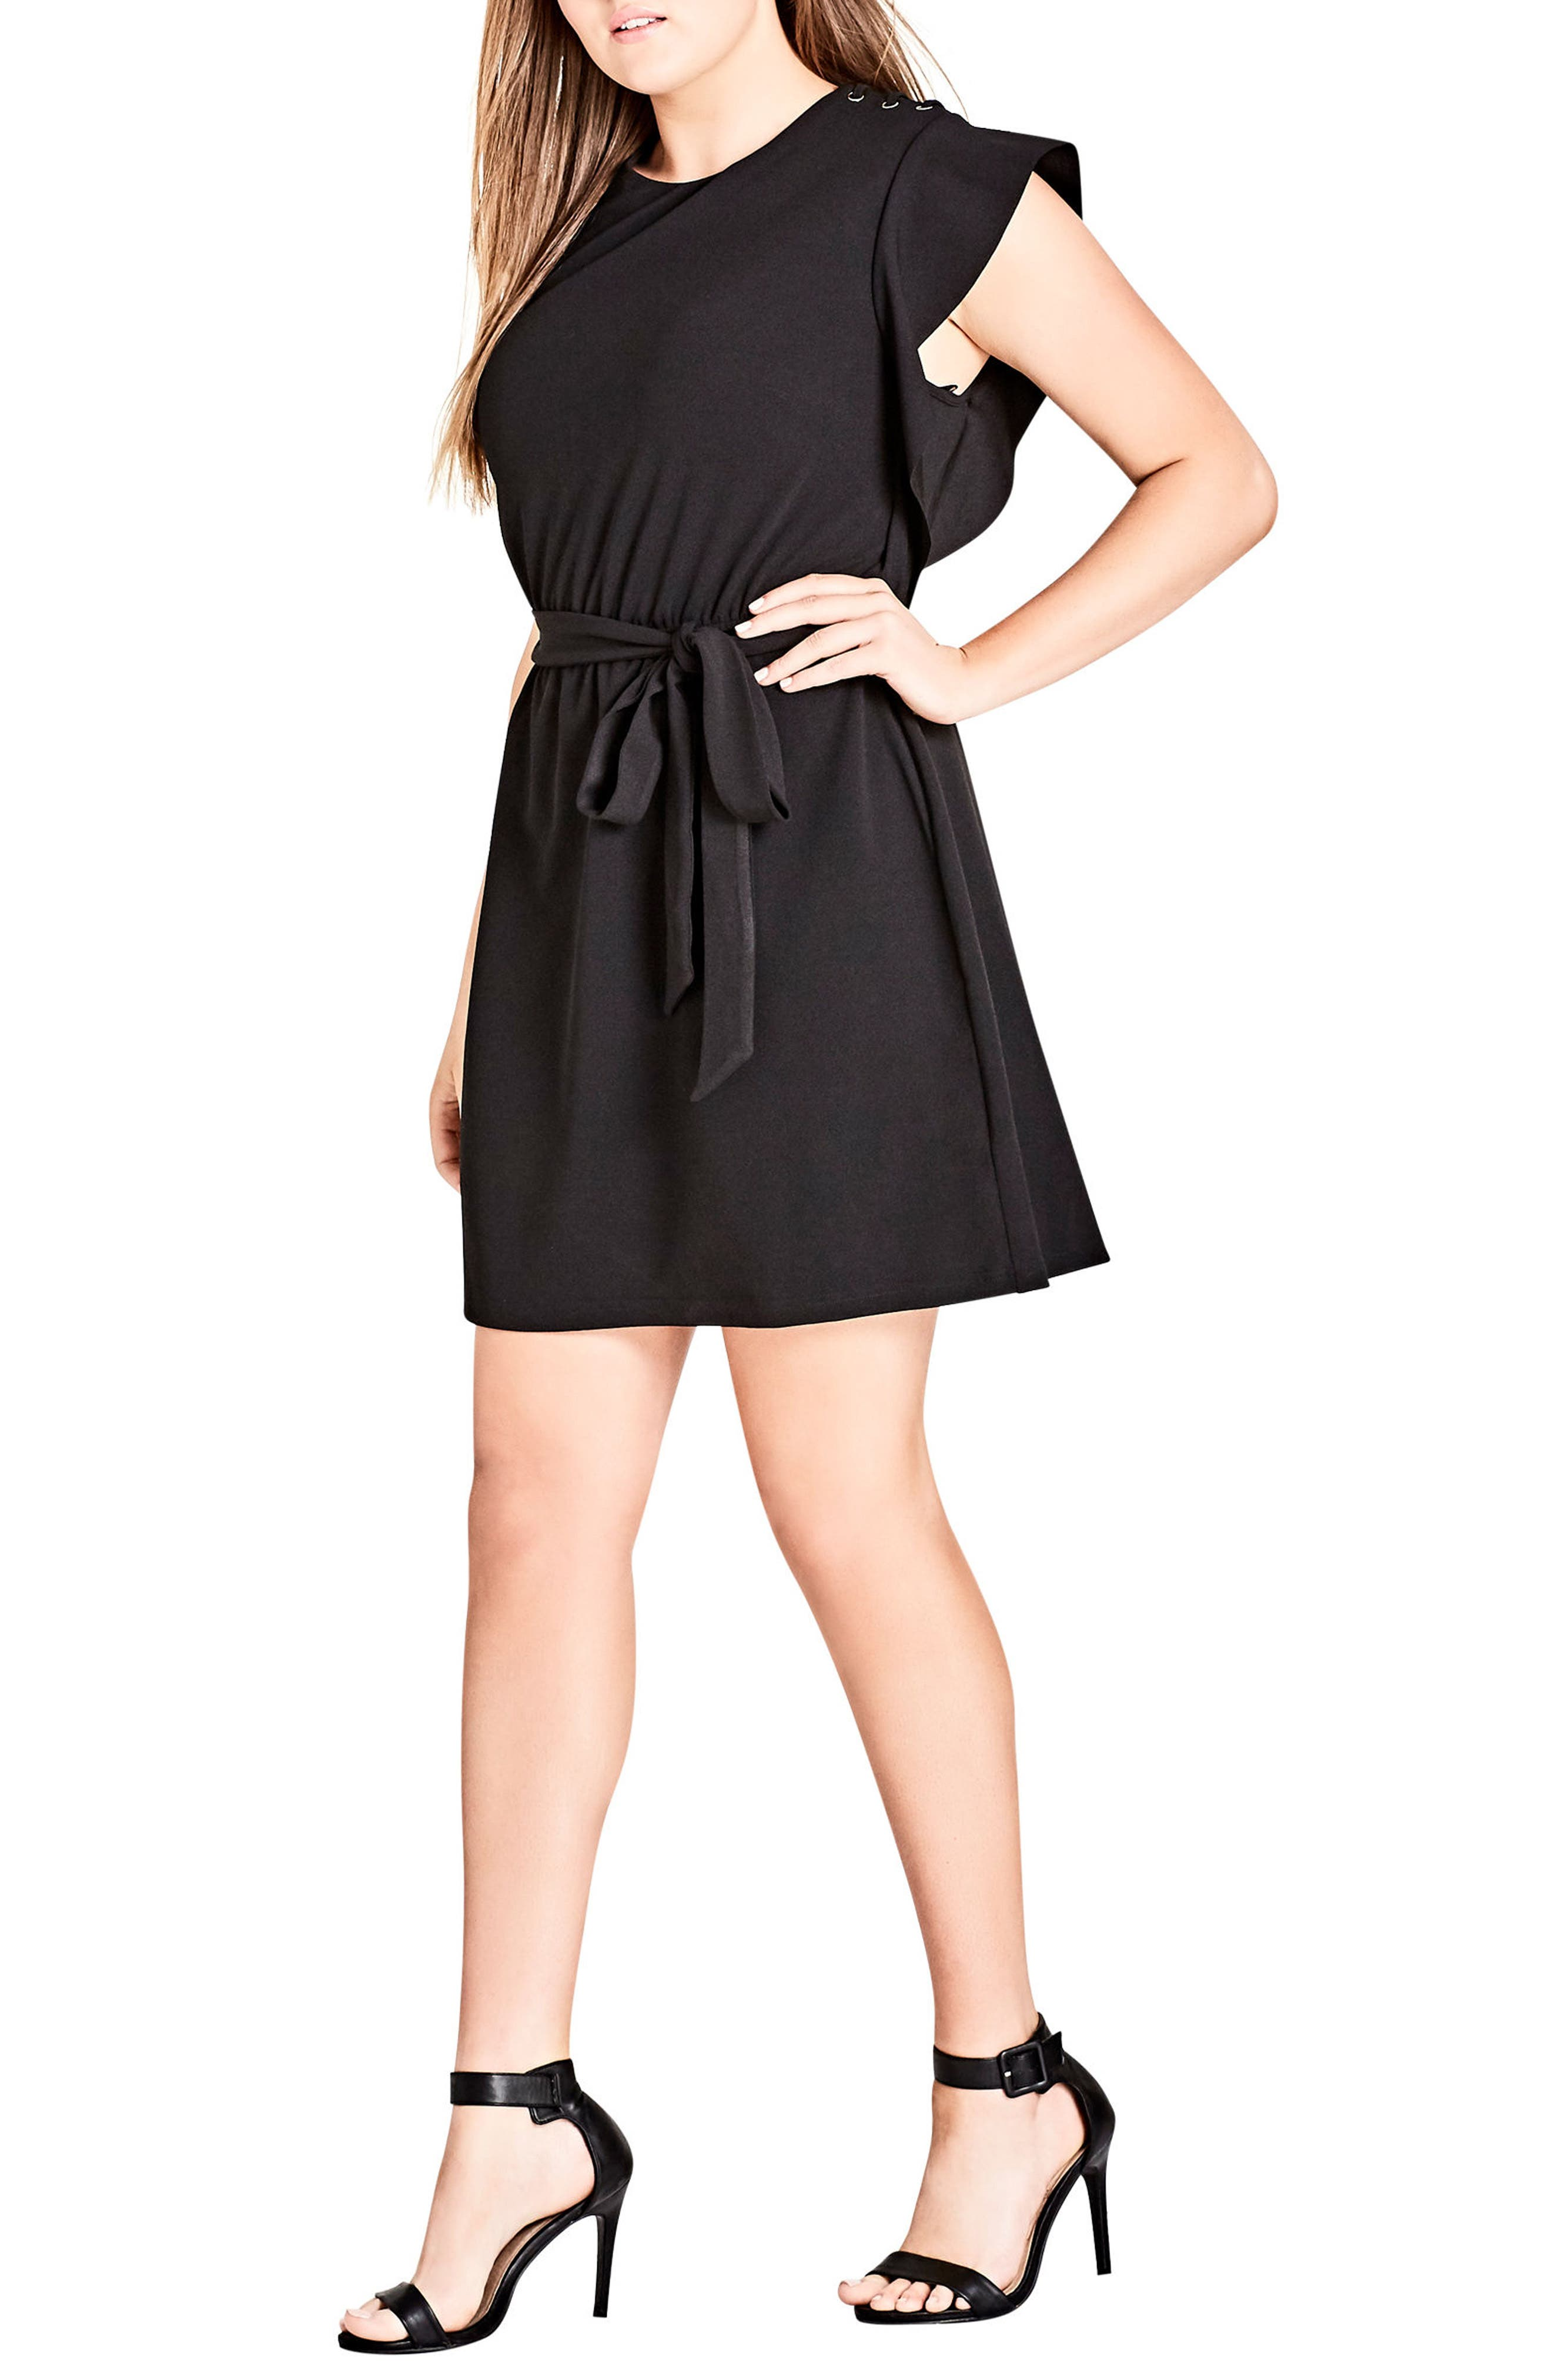 Alternate Image 1 Selected - City Chic Ring Me Ruffle Tunic Dress (Plus Size)